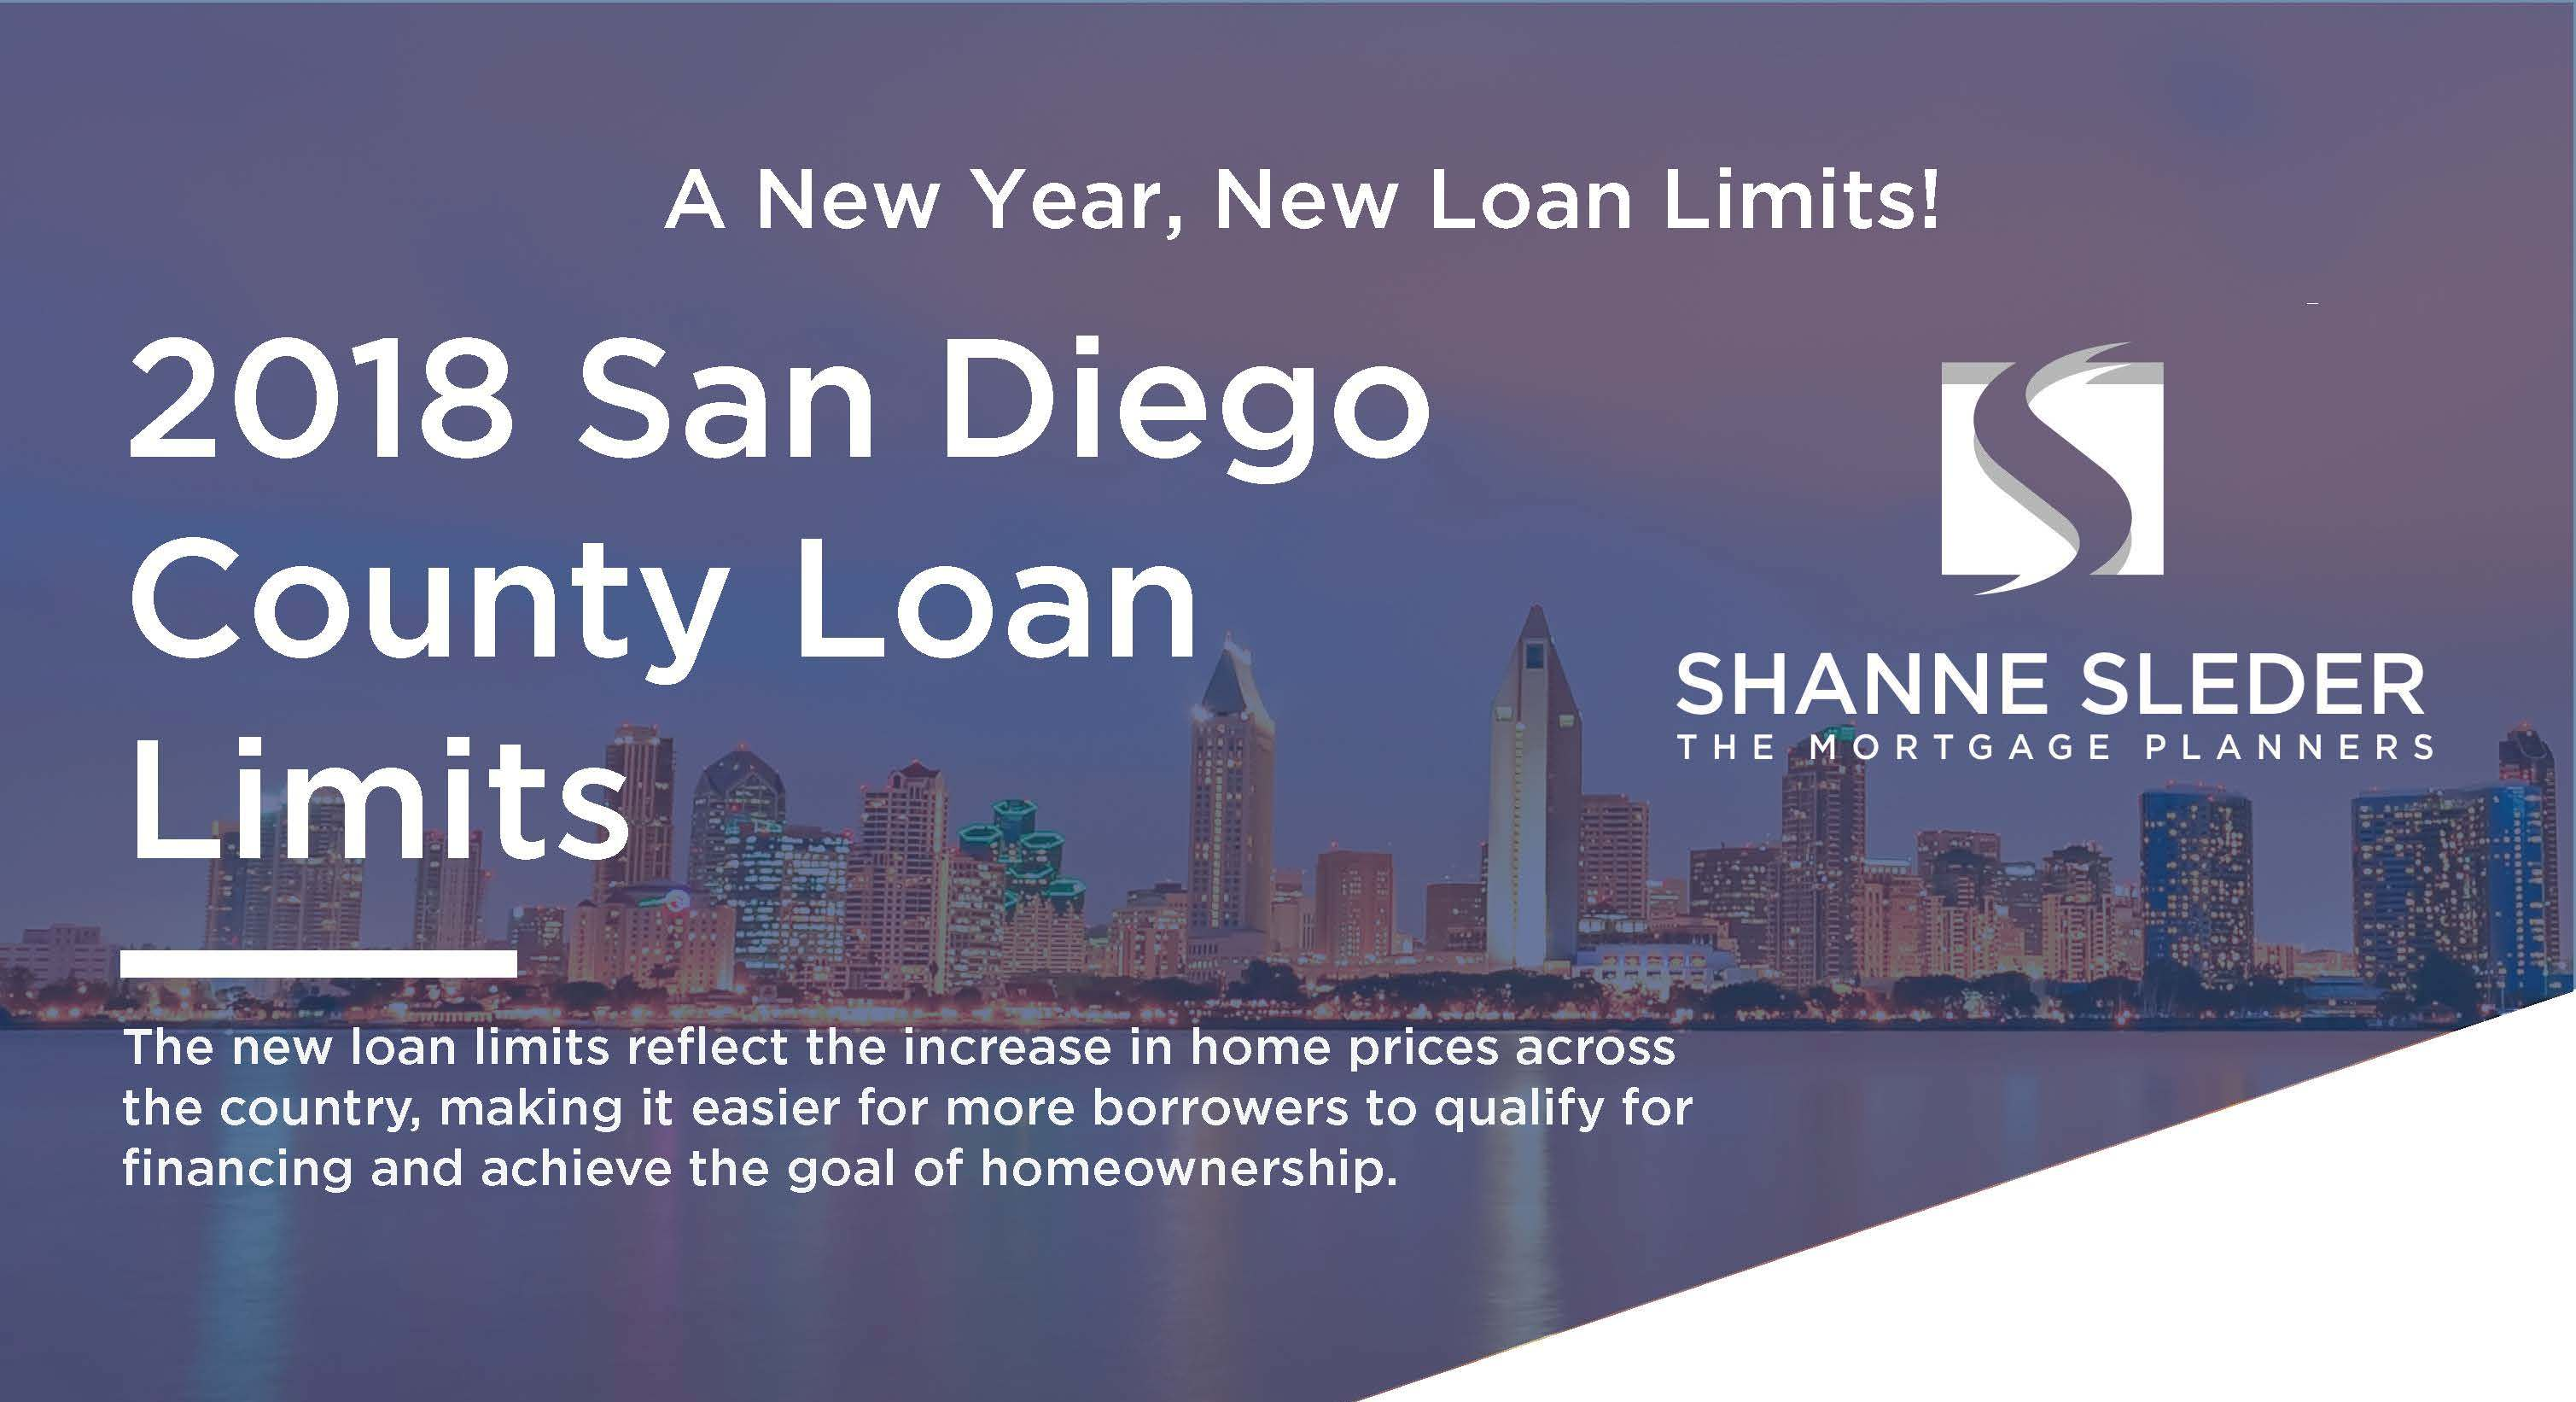 San Diego County Loan Limits